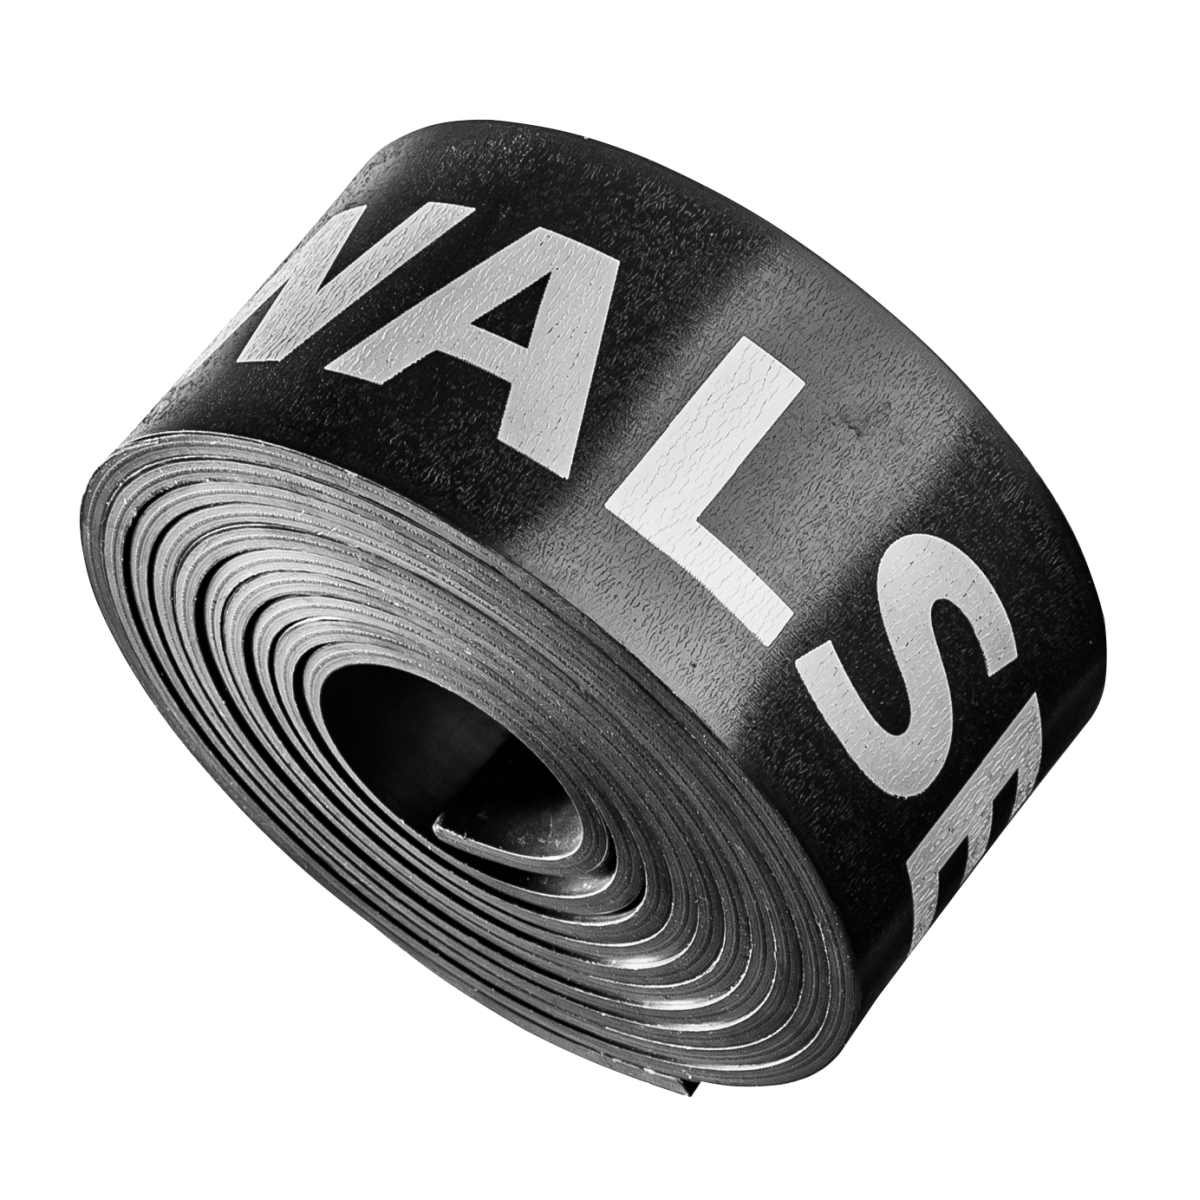 Walimex pro magnetic weightning tape 3cm, 1,35m